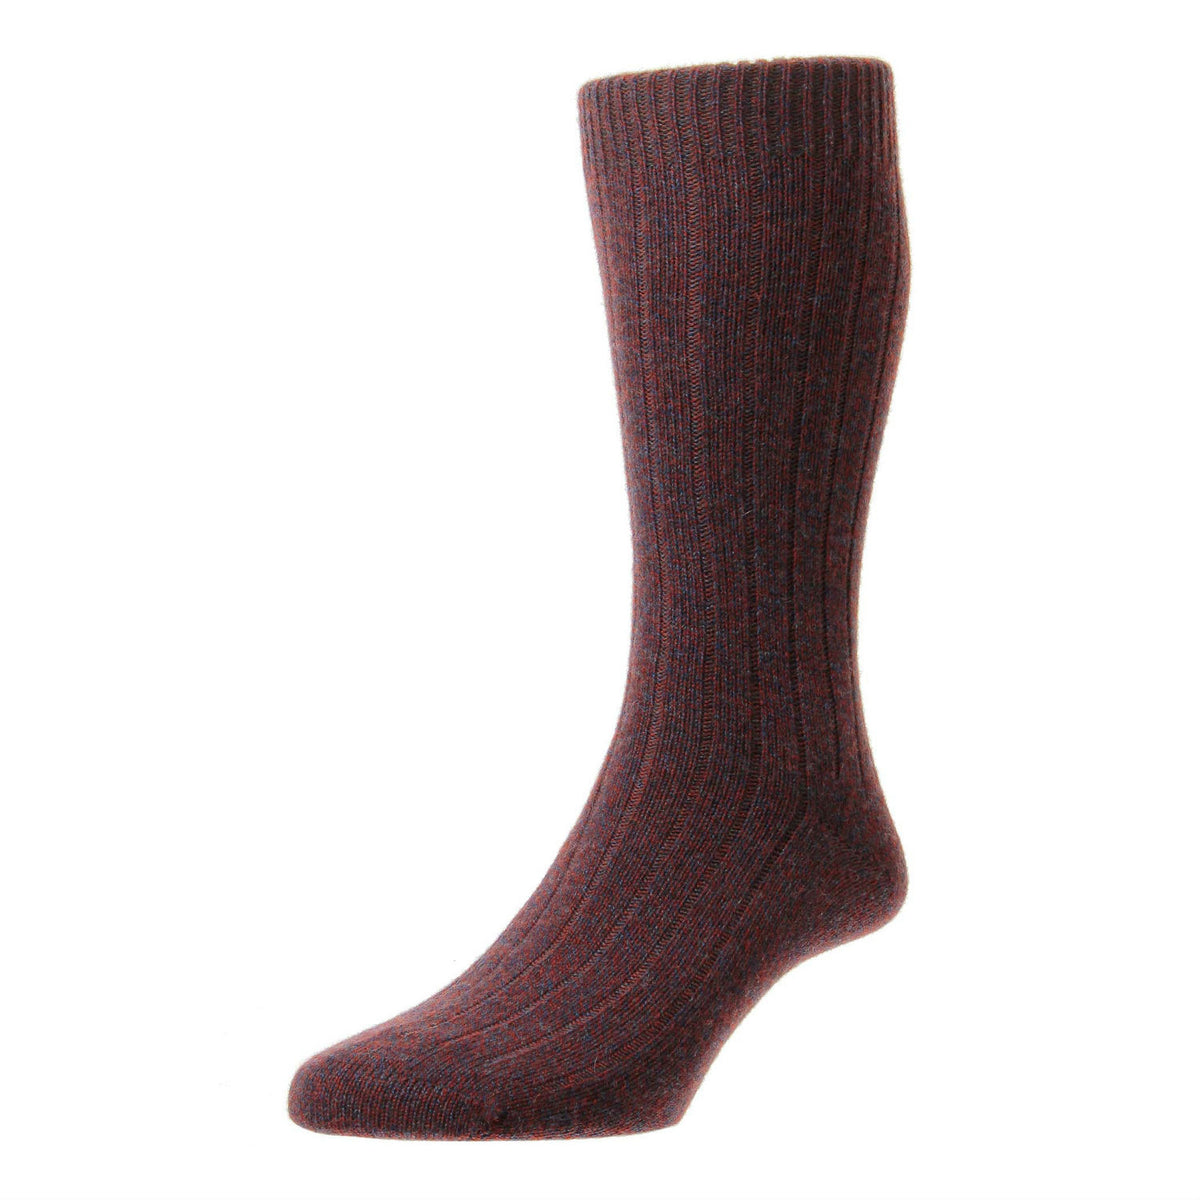 Rust Brown Denim | Mens Cashmere Socks | Made in England | Calf Length Sock | buy now at The Cashmere Choice London